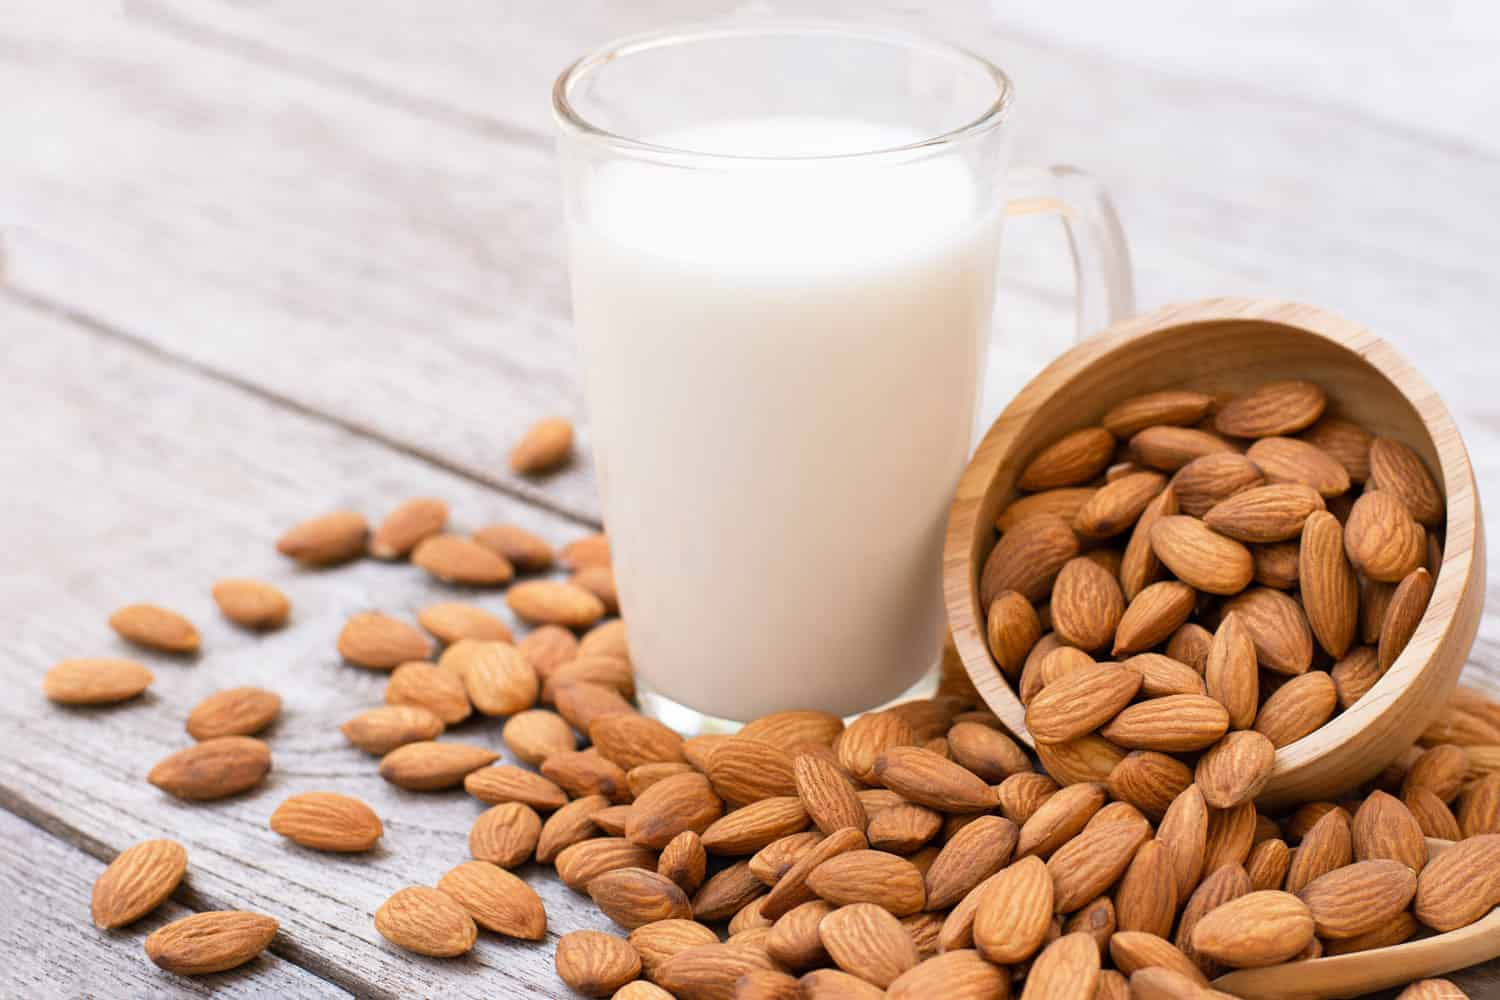 Almonds and almond milk on a wooden table